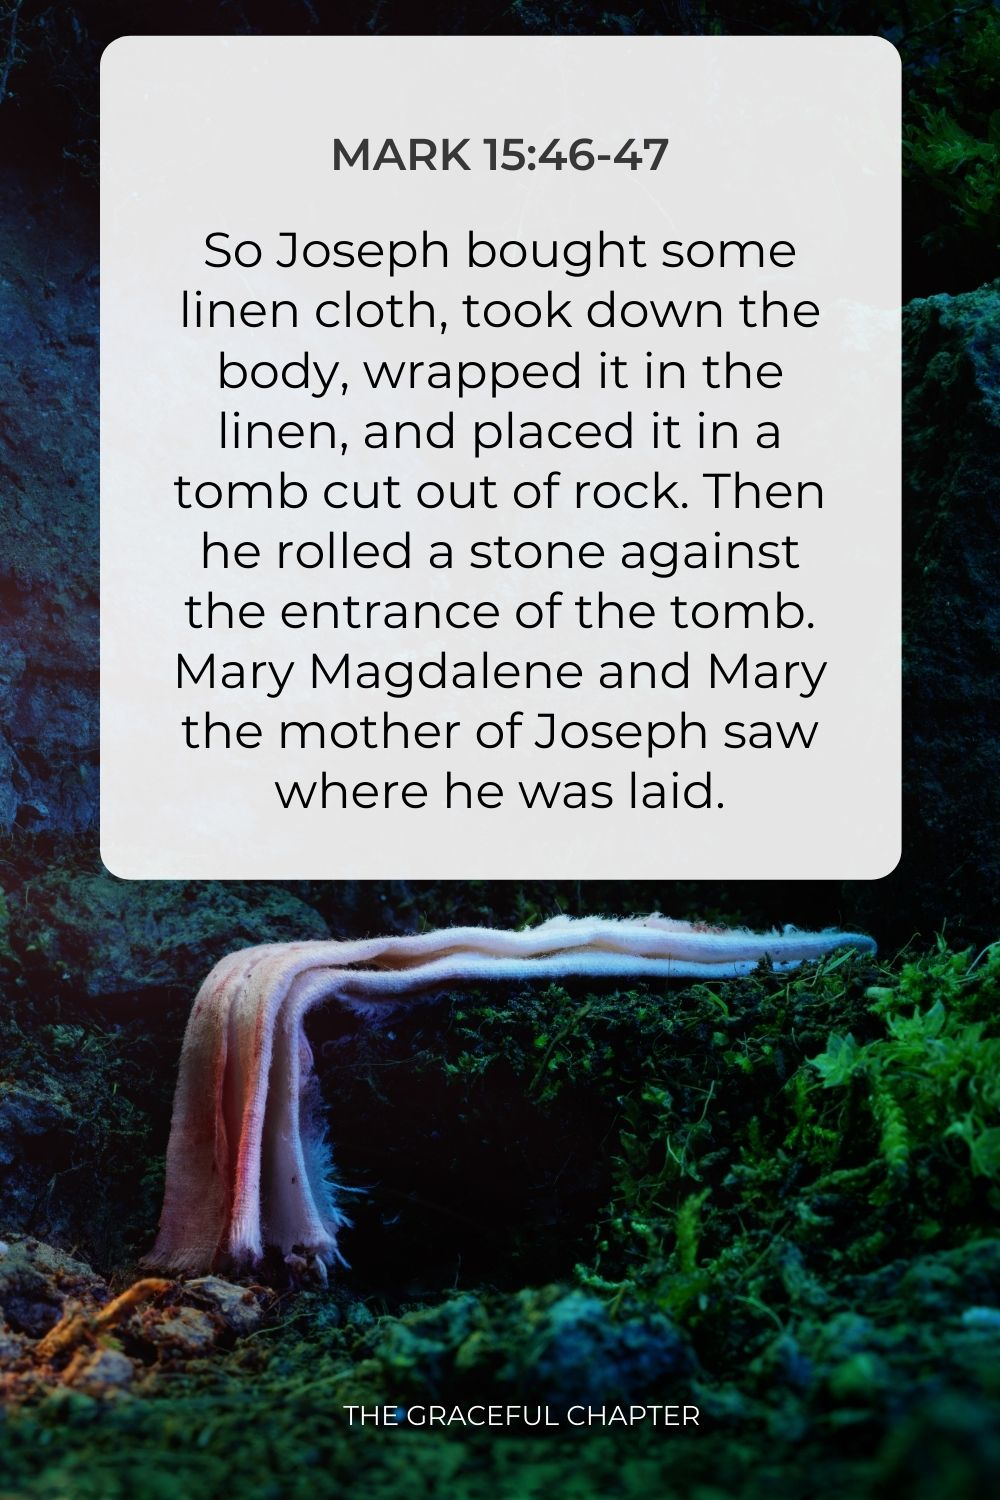 So Joseph bought some linen cloth, took down the body, wrapped it in the linen, and placed it in a tomb cut out of rock. Then he rolled a stone against the entrance of the tomb. Mary Magdalene and Mary the mother of Joseph saw where he was laid. Mark 15:46-47